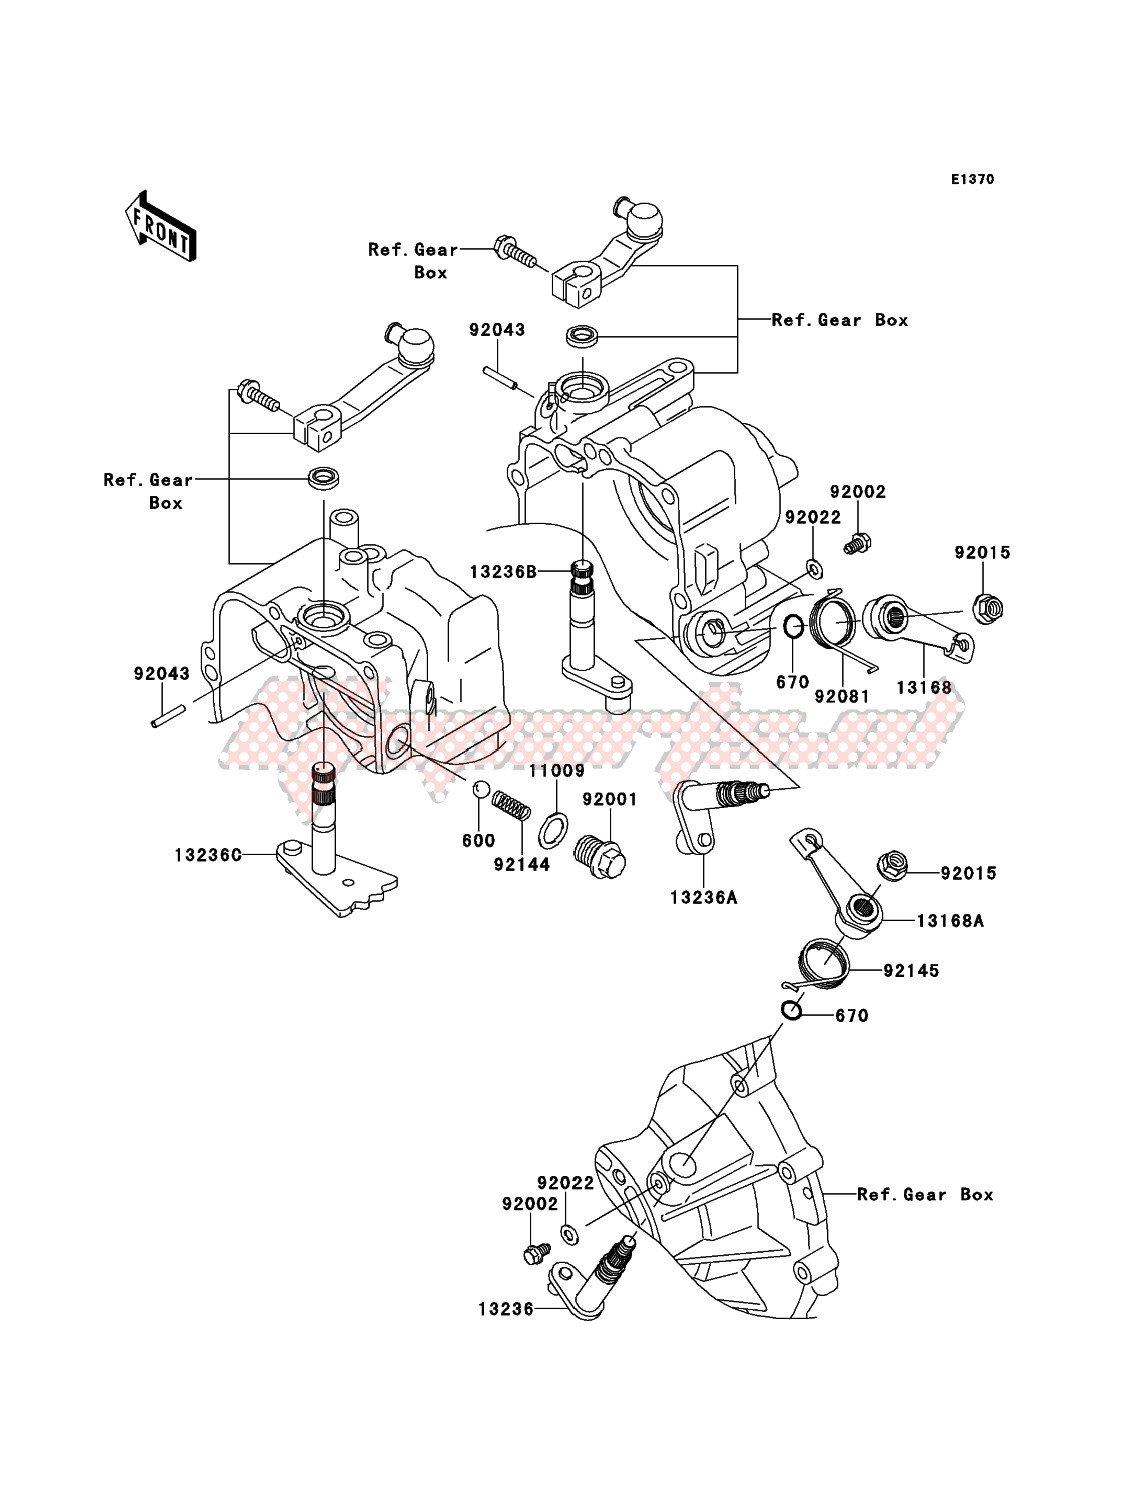 Engine-Gear Change Mechanism